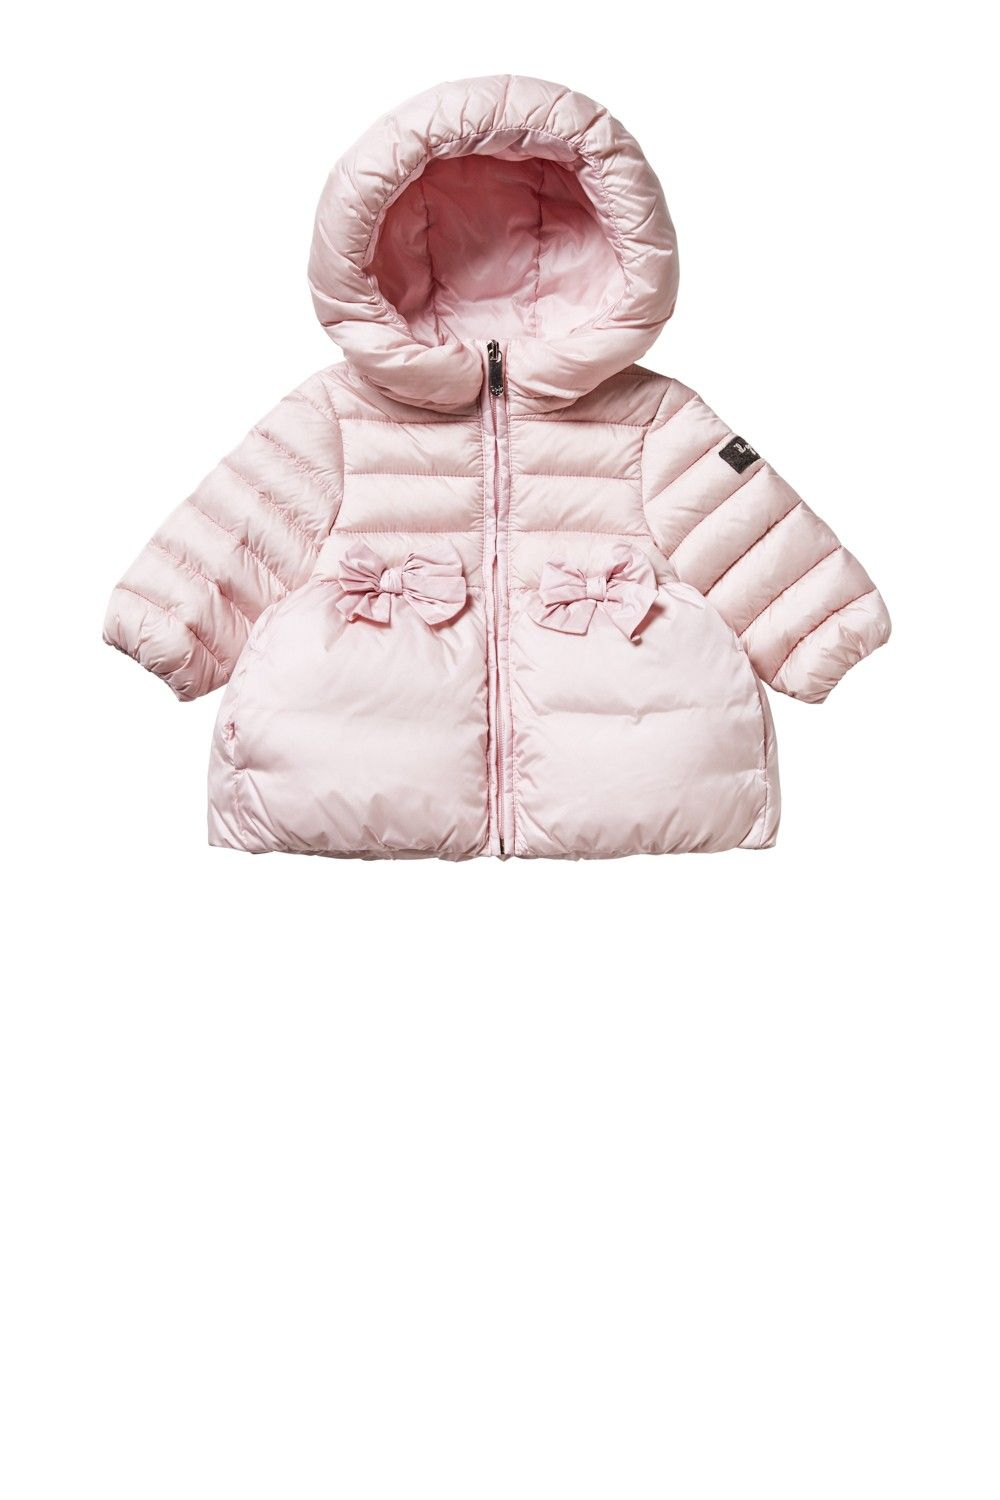 PINK QUILTED JACKET WITH HOOD AND FRILL WITH BOWS baby